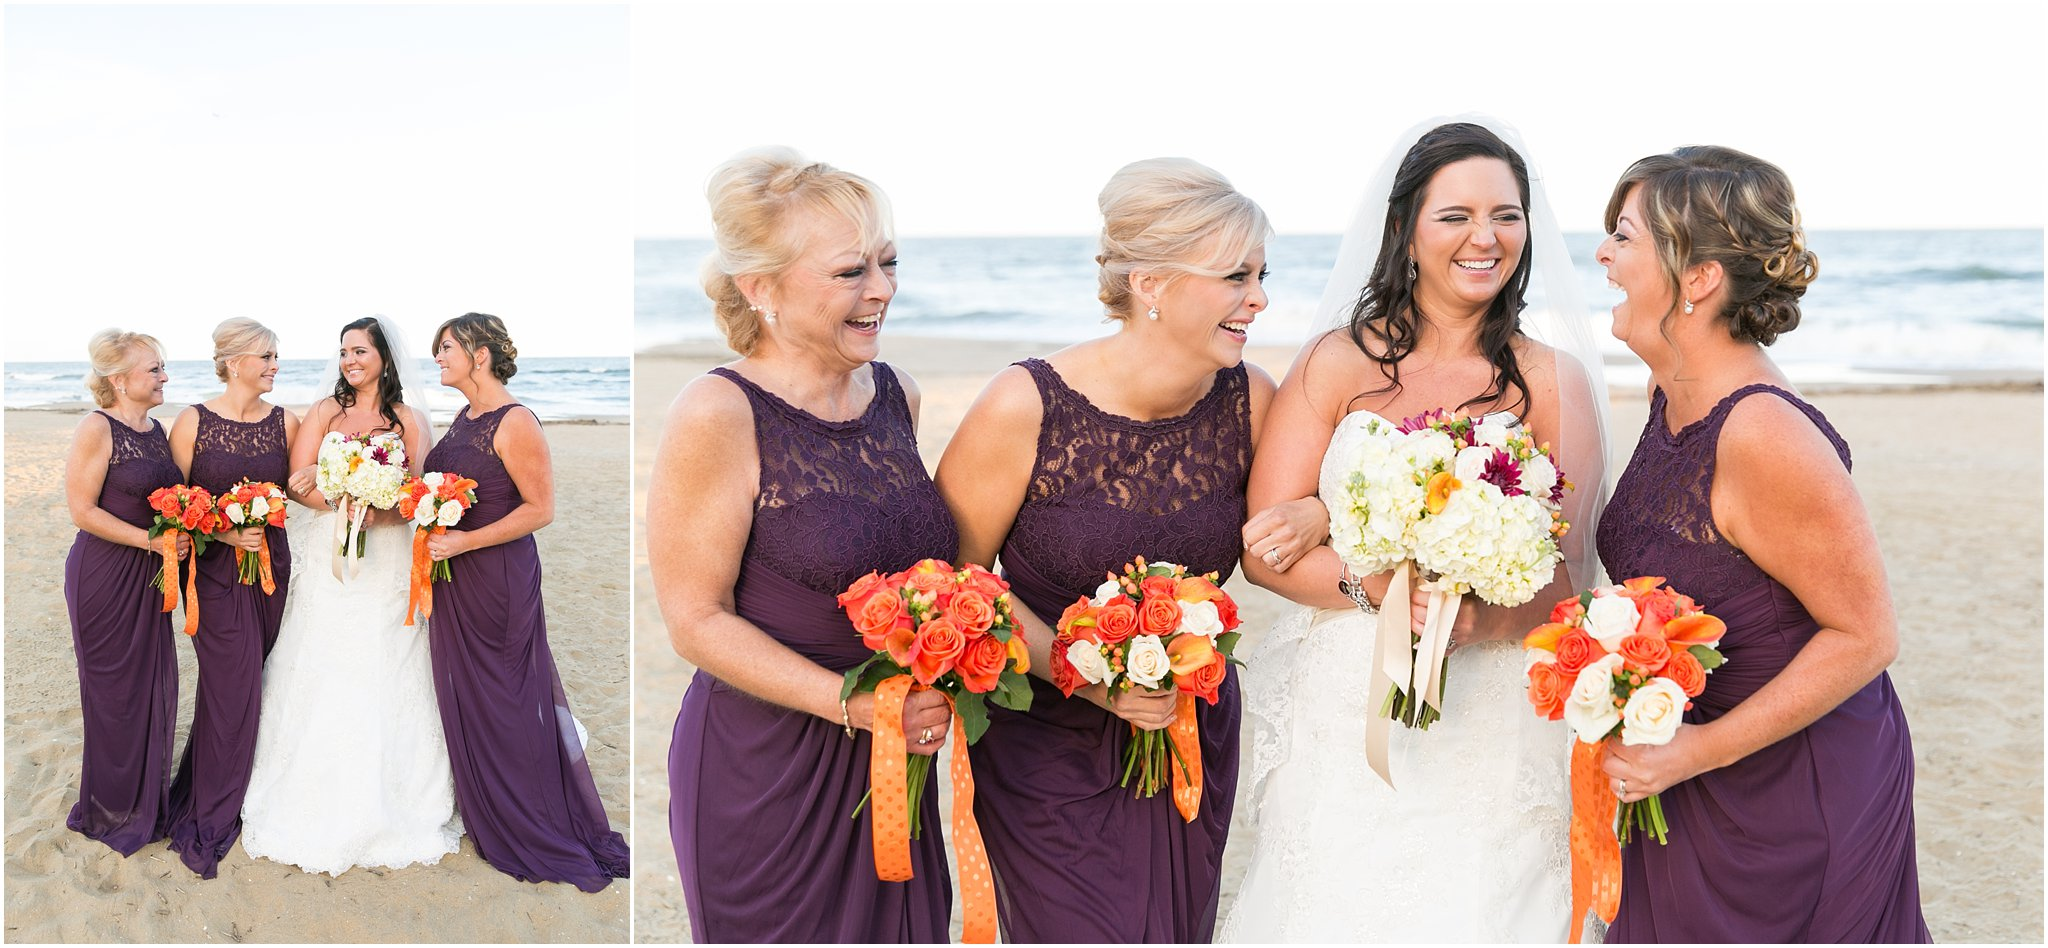 jessica_ryan_photography_wedding_virginia_beach_oceanfront_holiday_inn_north_suites_hotel_wedding_0679